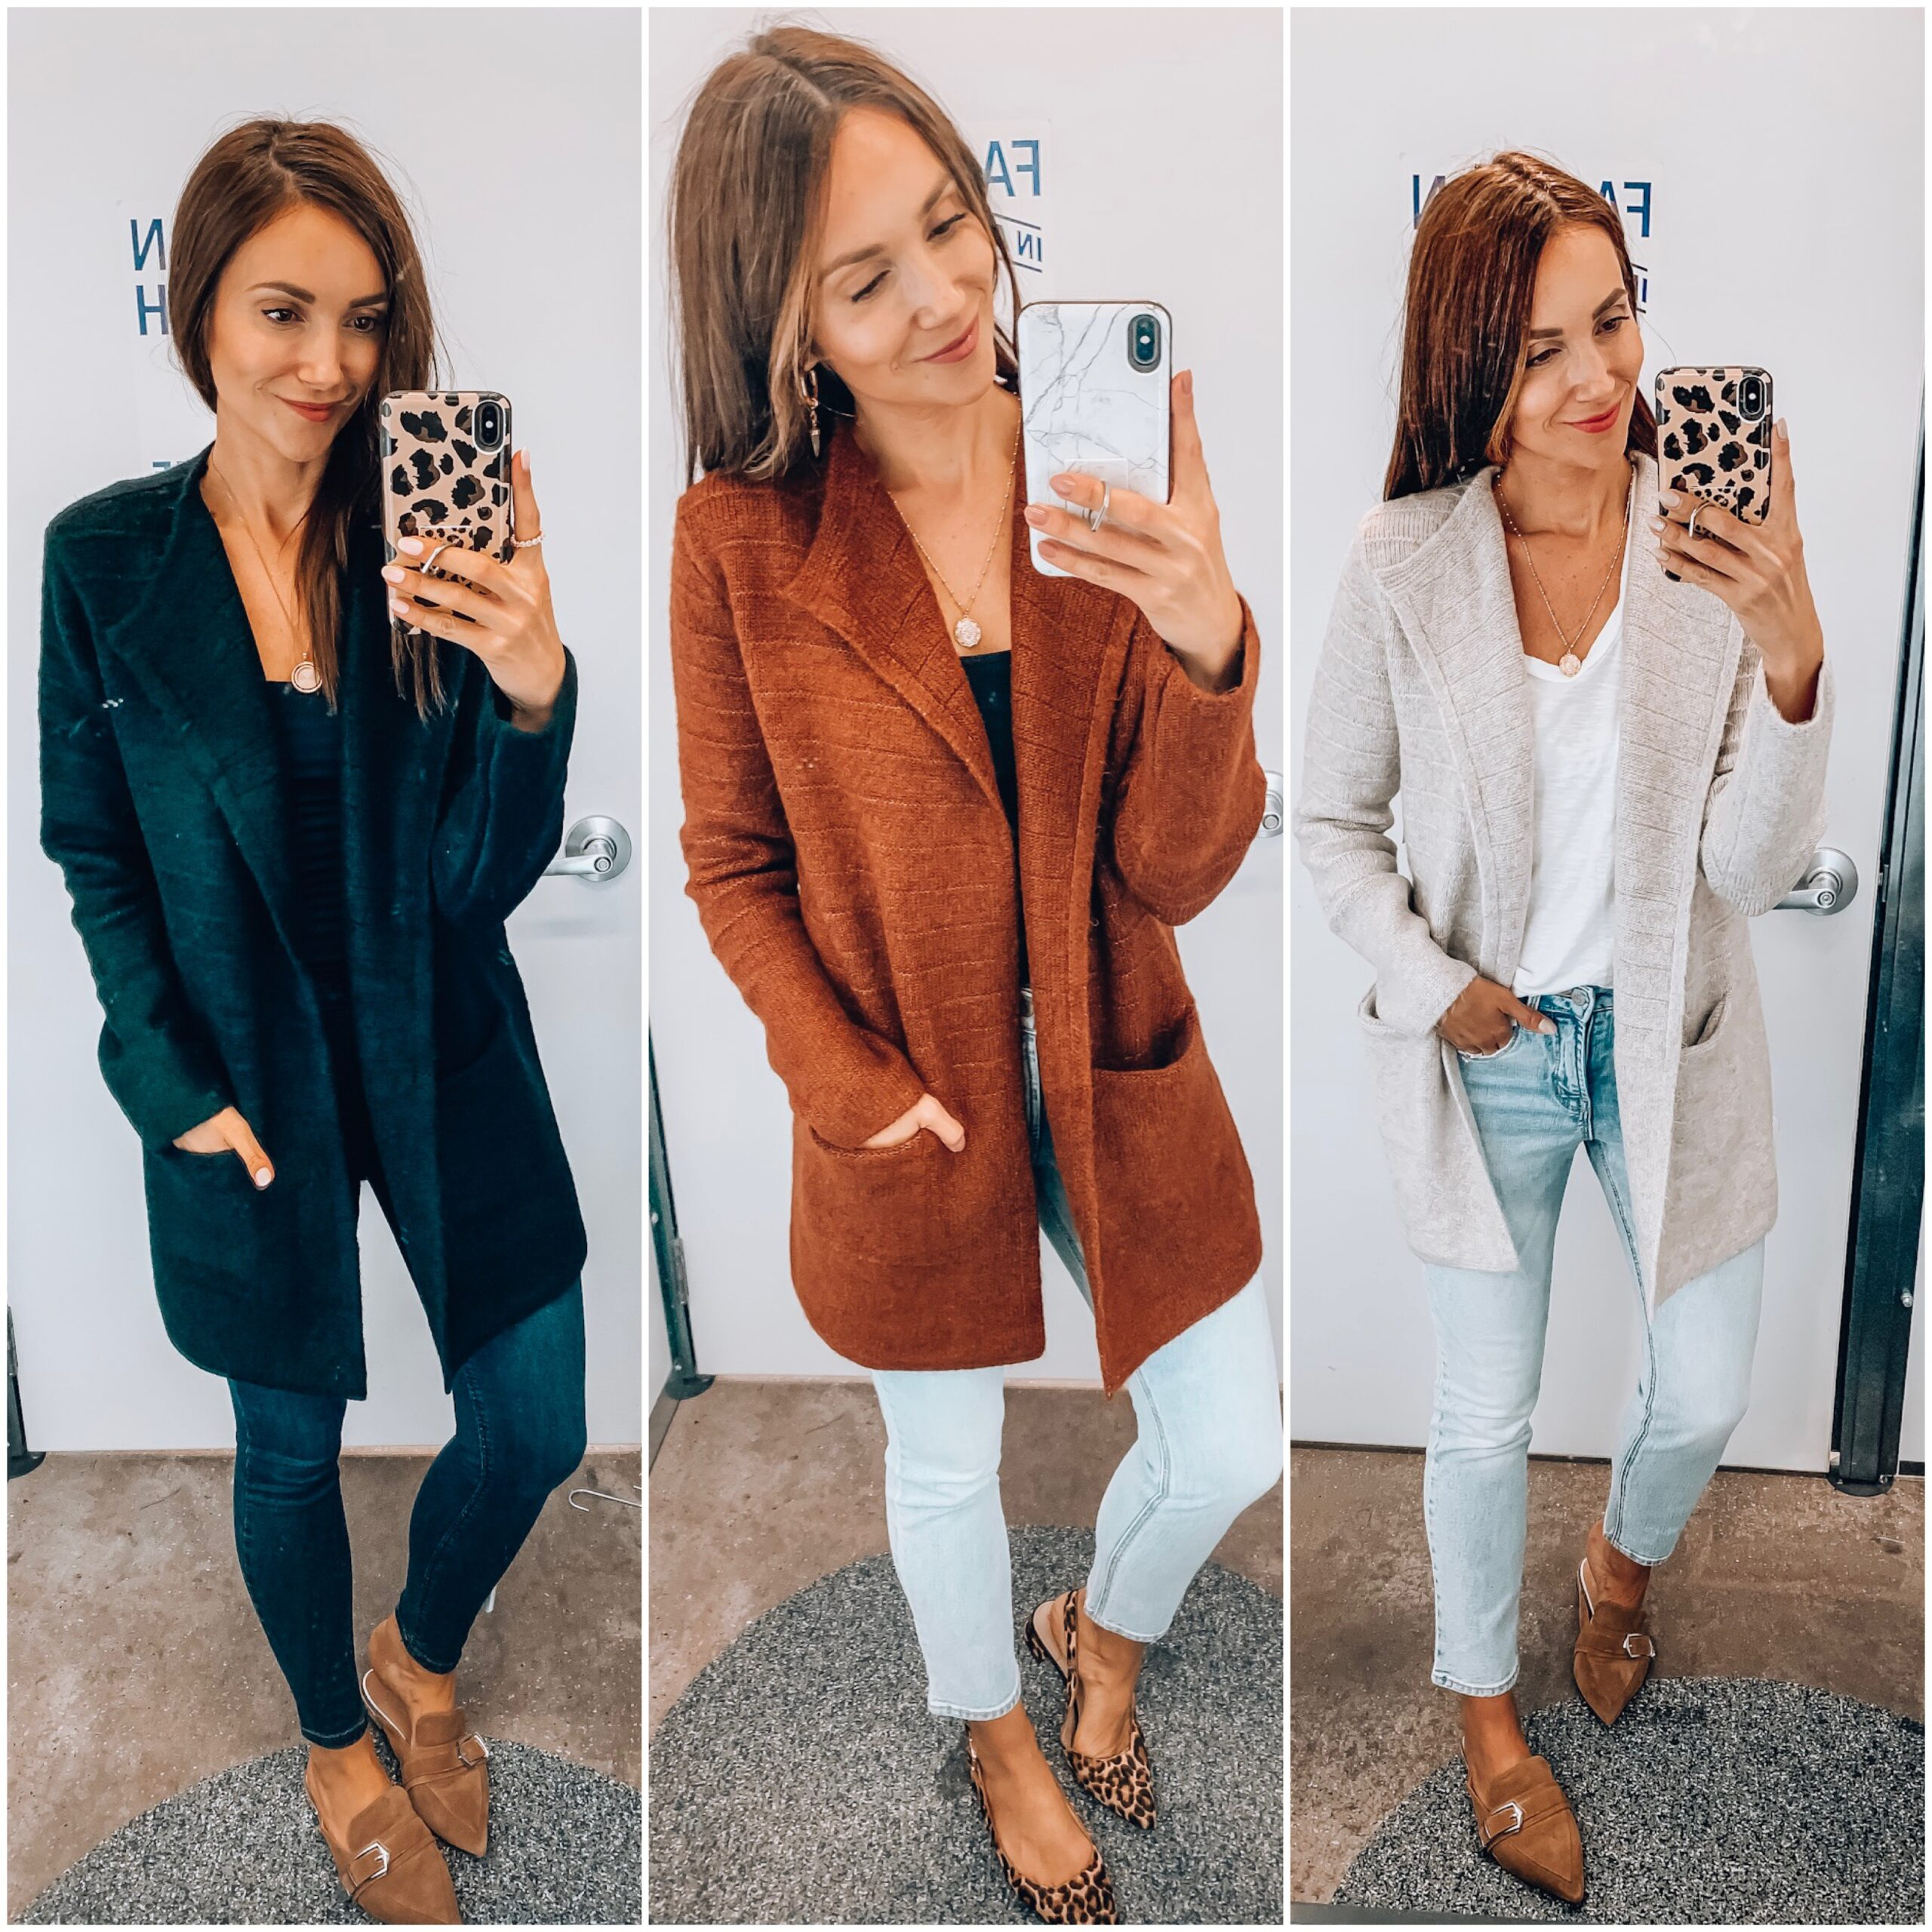 CARDIGANS, JEANS, TANKS, FALL OUTFITS